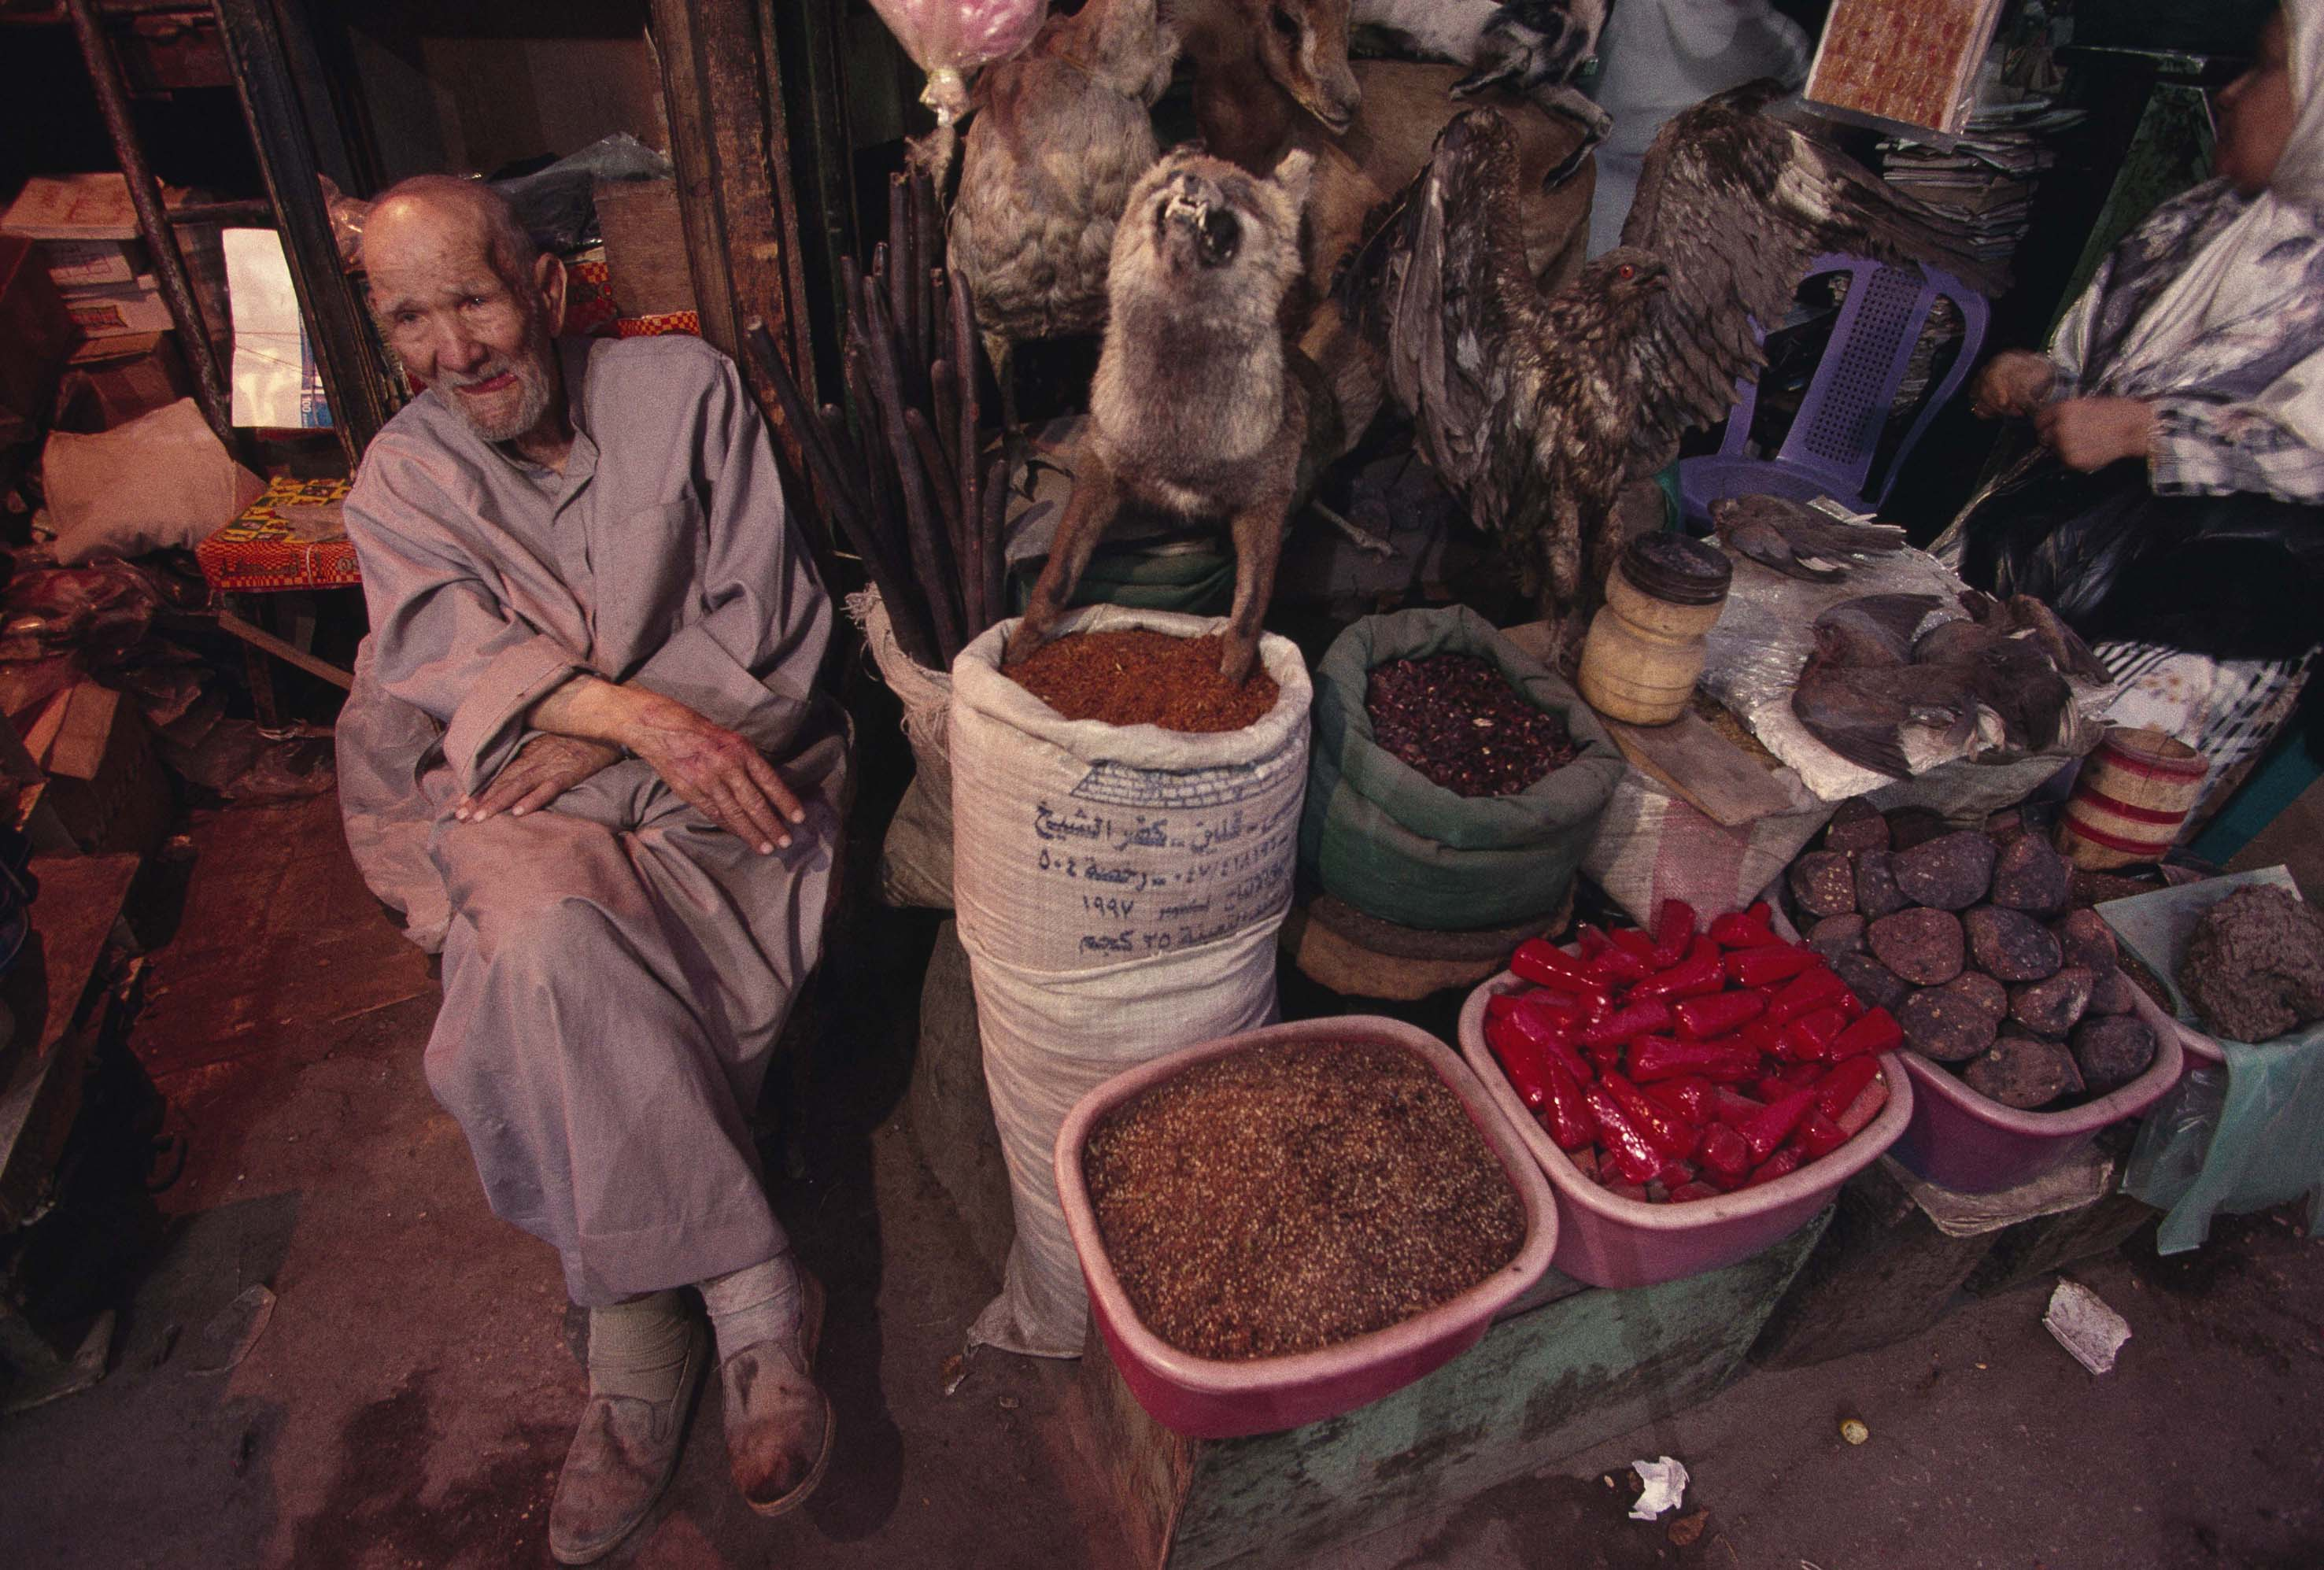 A local vendor sells the items for whatever ails you at the Khan el Kalili Baza ar.  He's got herbs, spices, and many other things, including stuffed and mount ed animals.